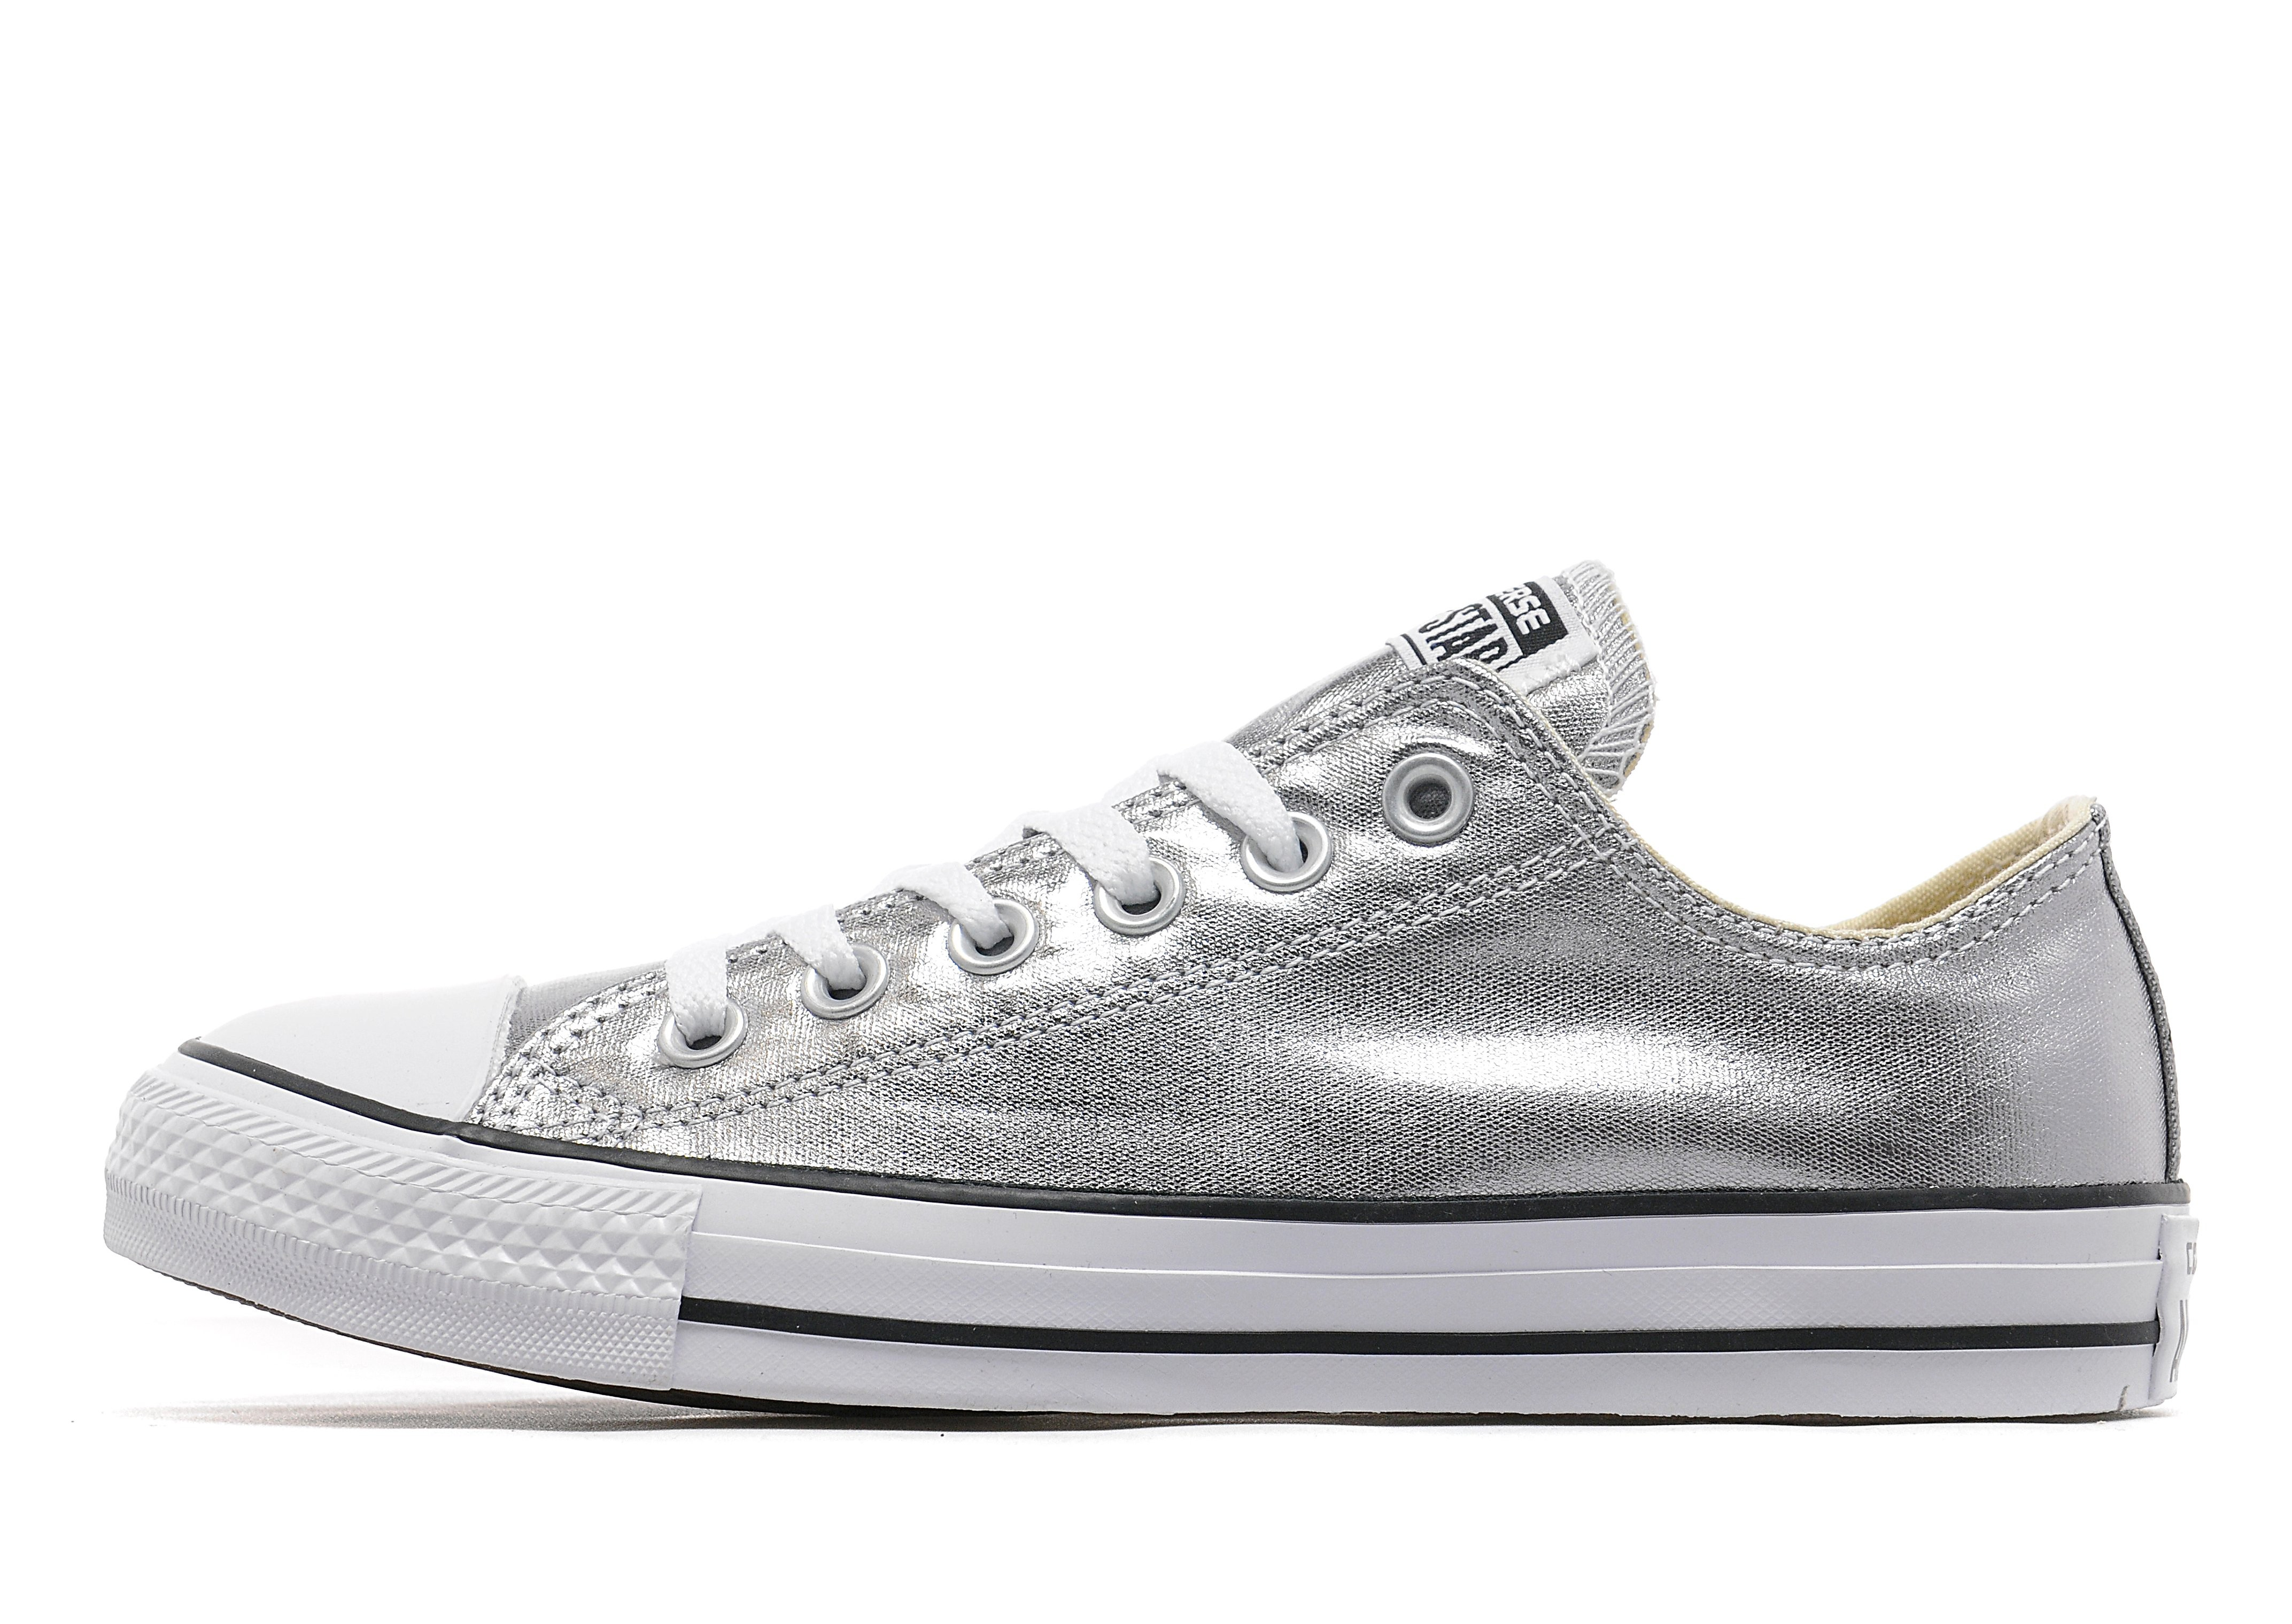 cc436cfb27cfe9 Converse All Star Ox Women s - Silver - Womens - Sports King Store